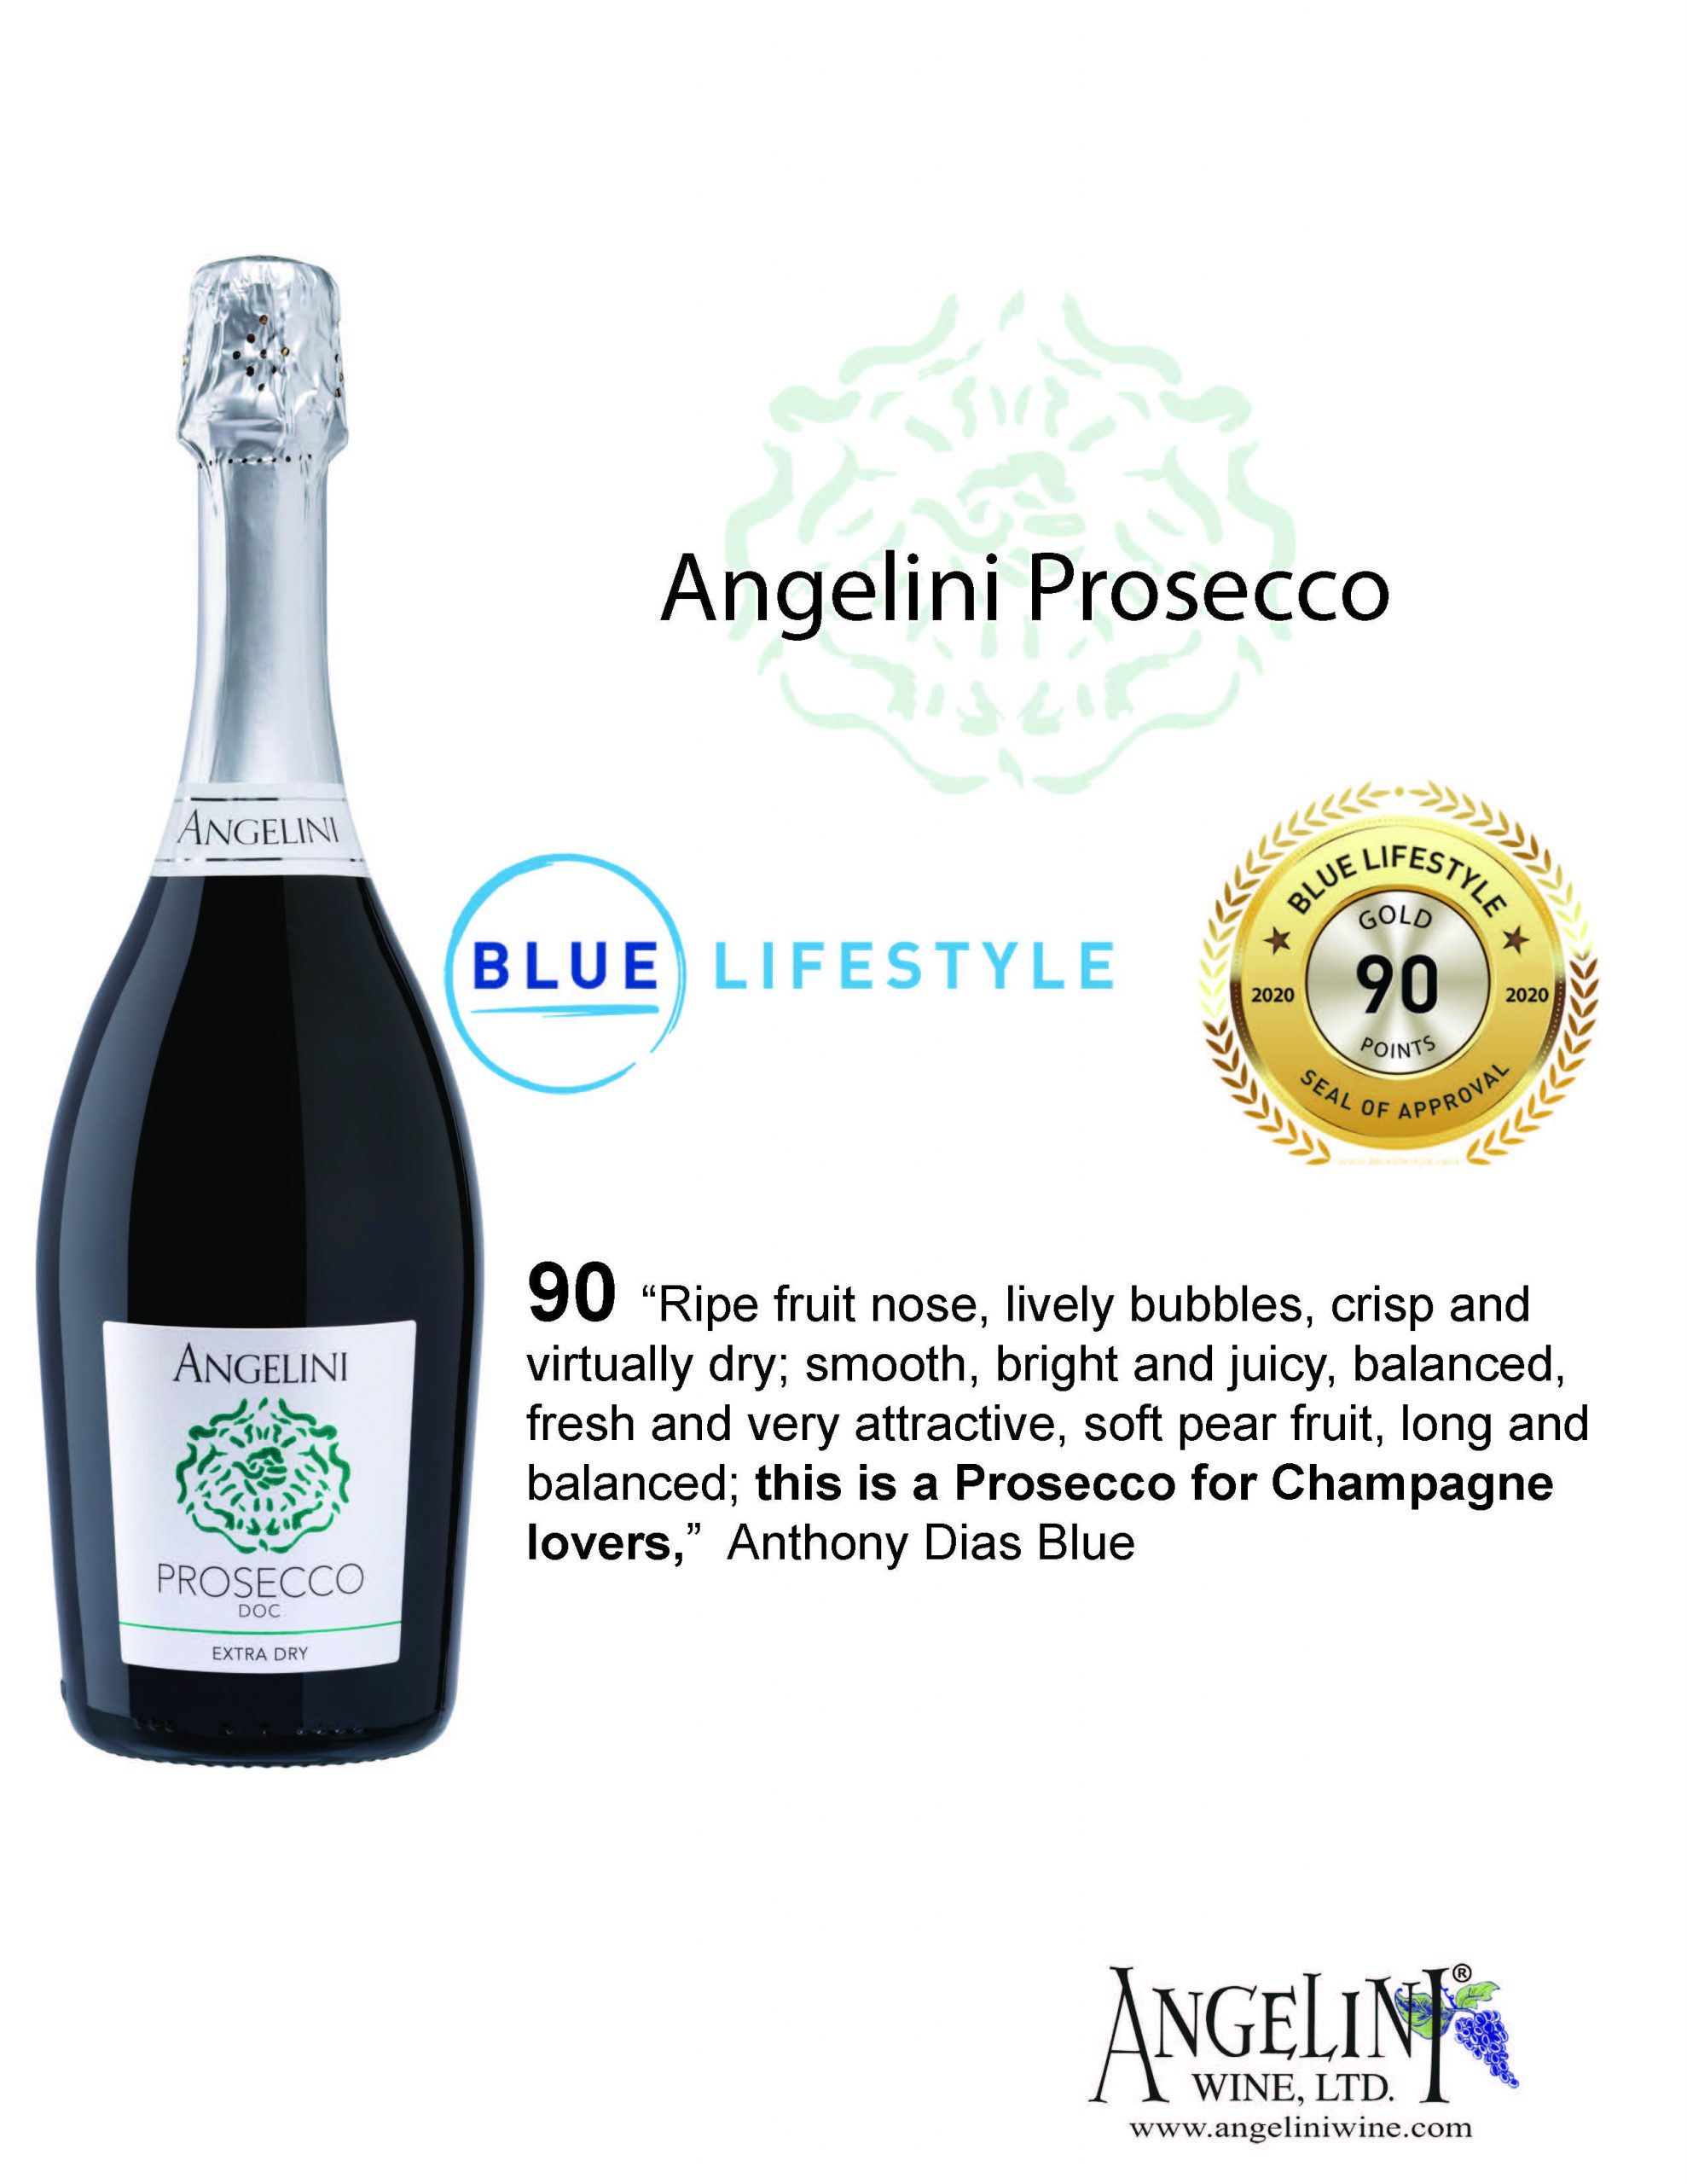 https://www.angeliniwine.com/wp-content/uploads/2021/03/Angelini-Prosecco-BL-90-scaled.jpg